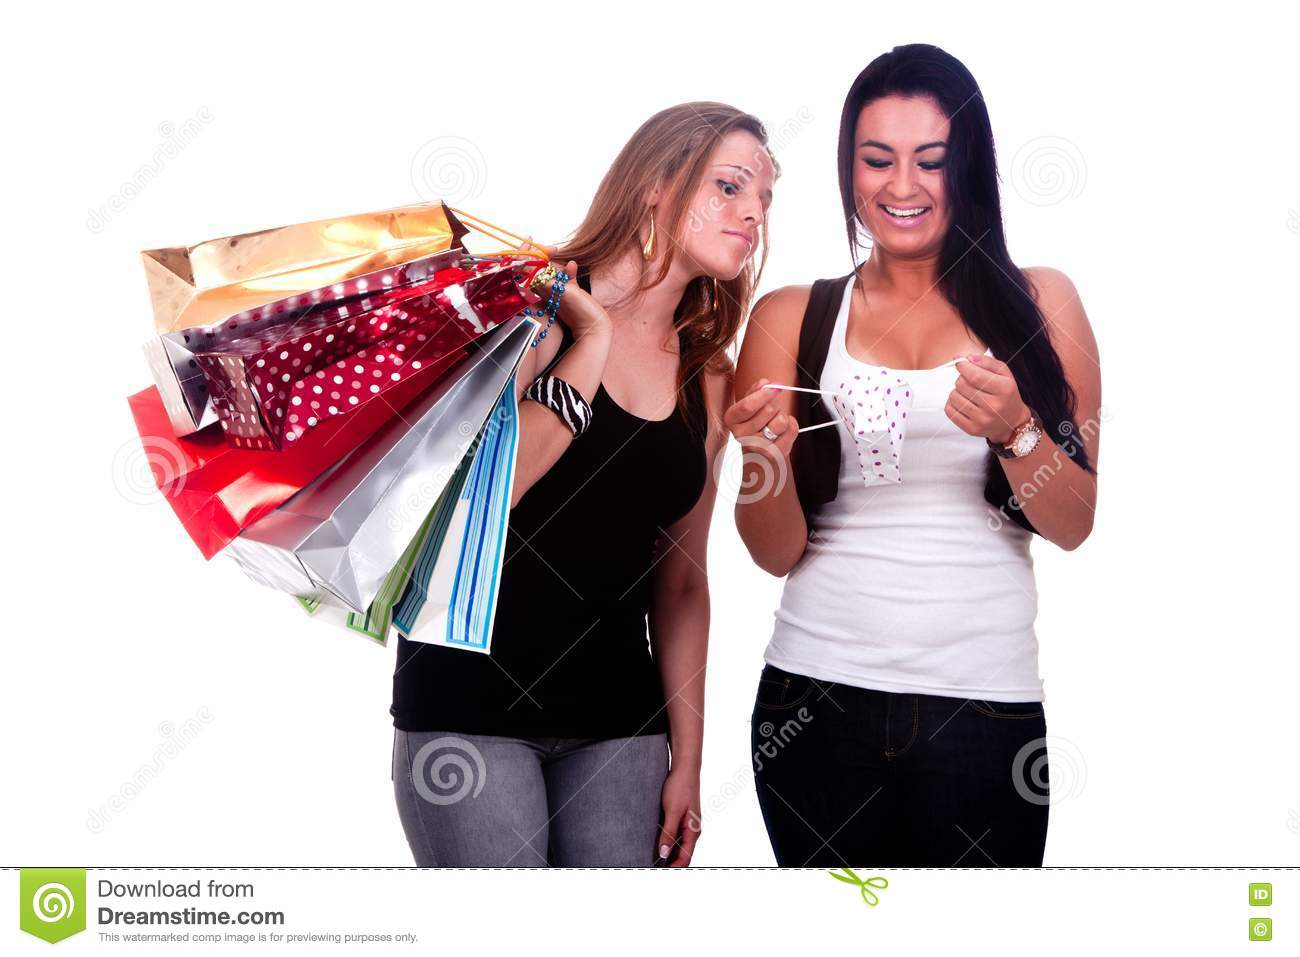 Essay on pleasures and disappointments of shopping